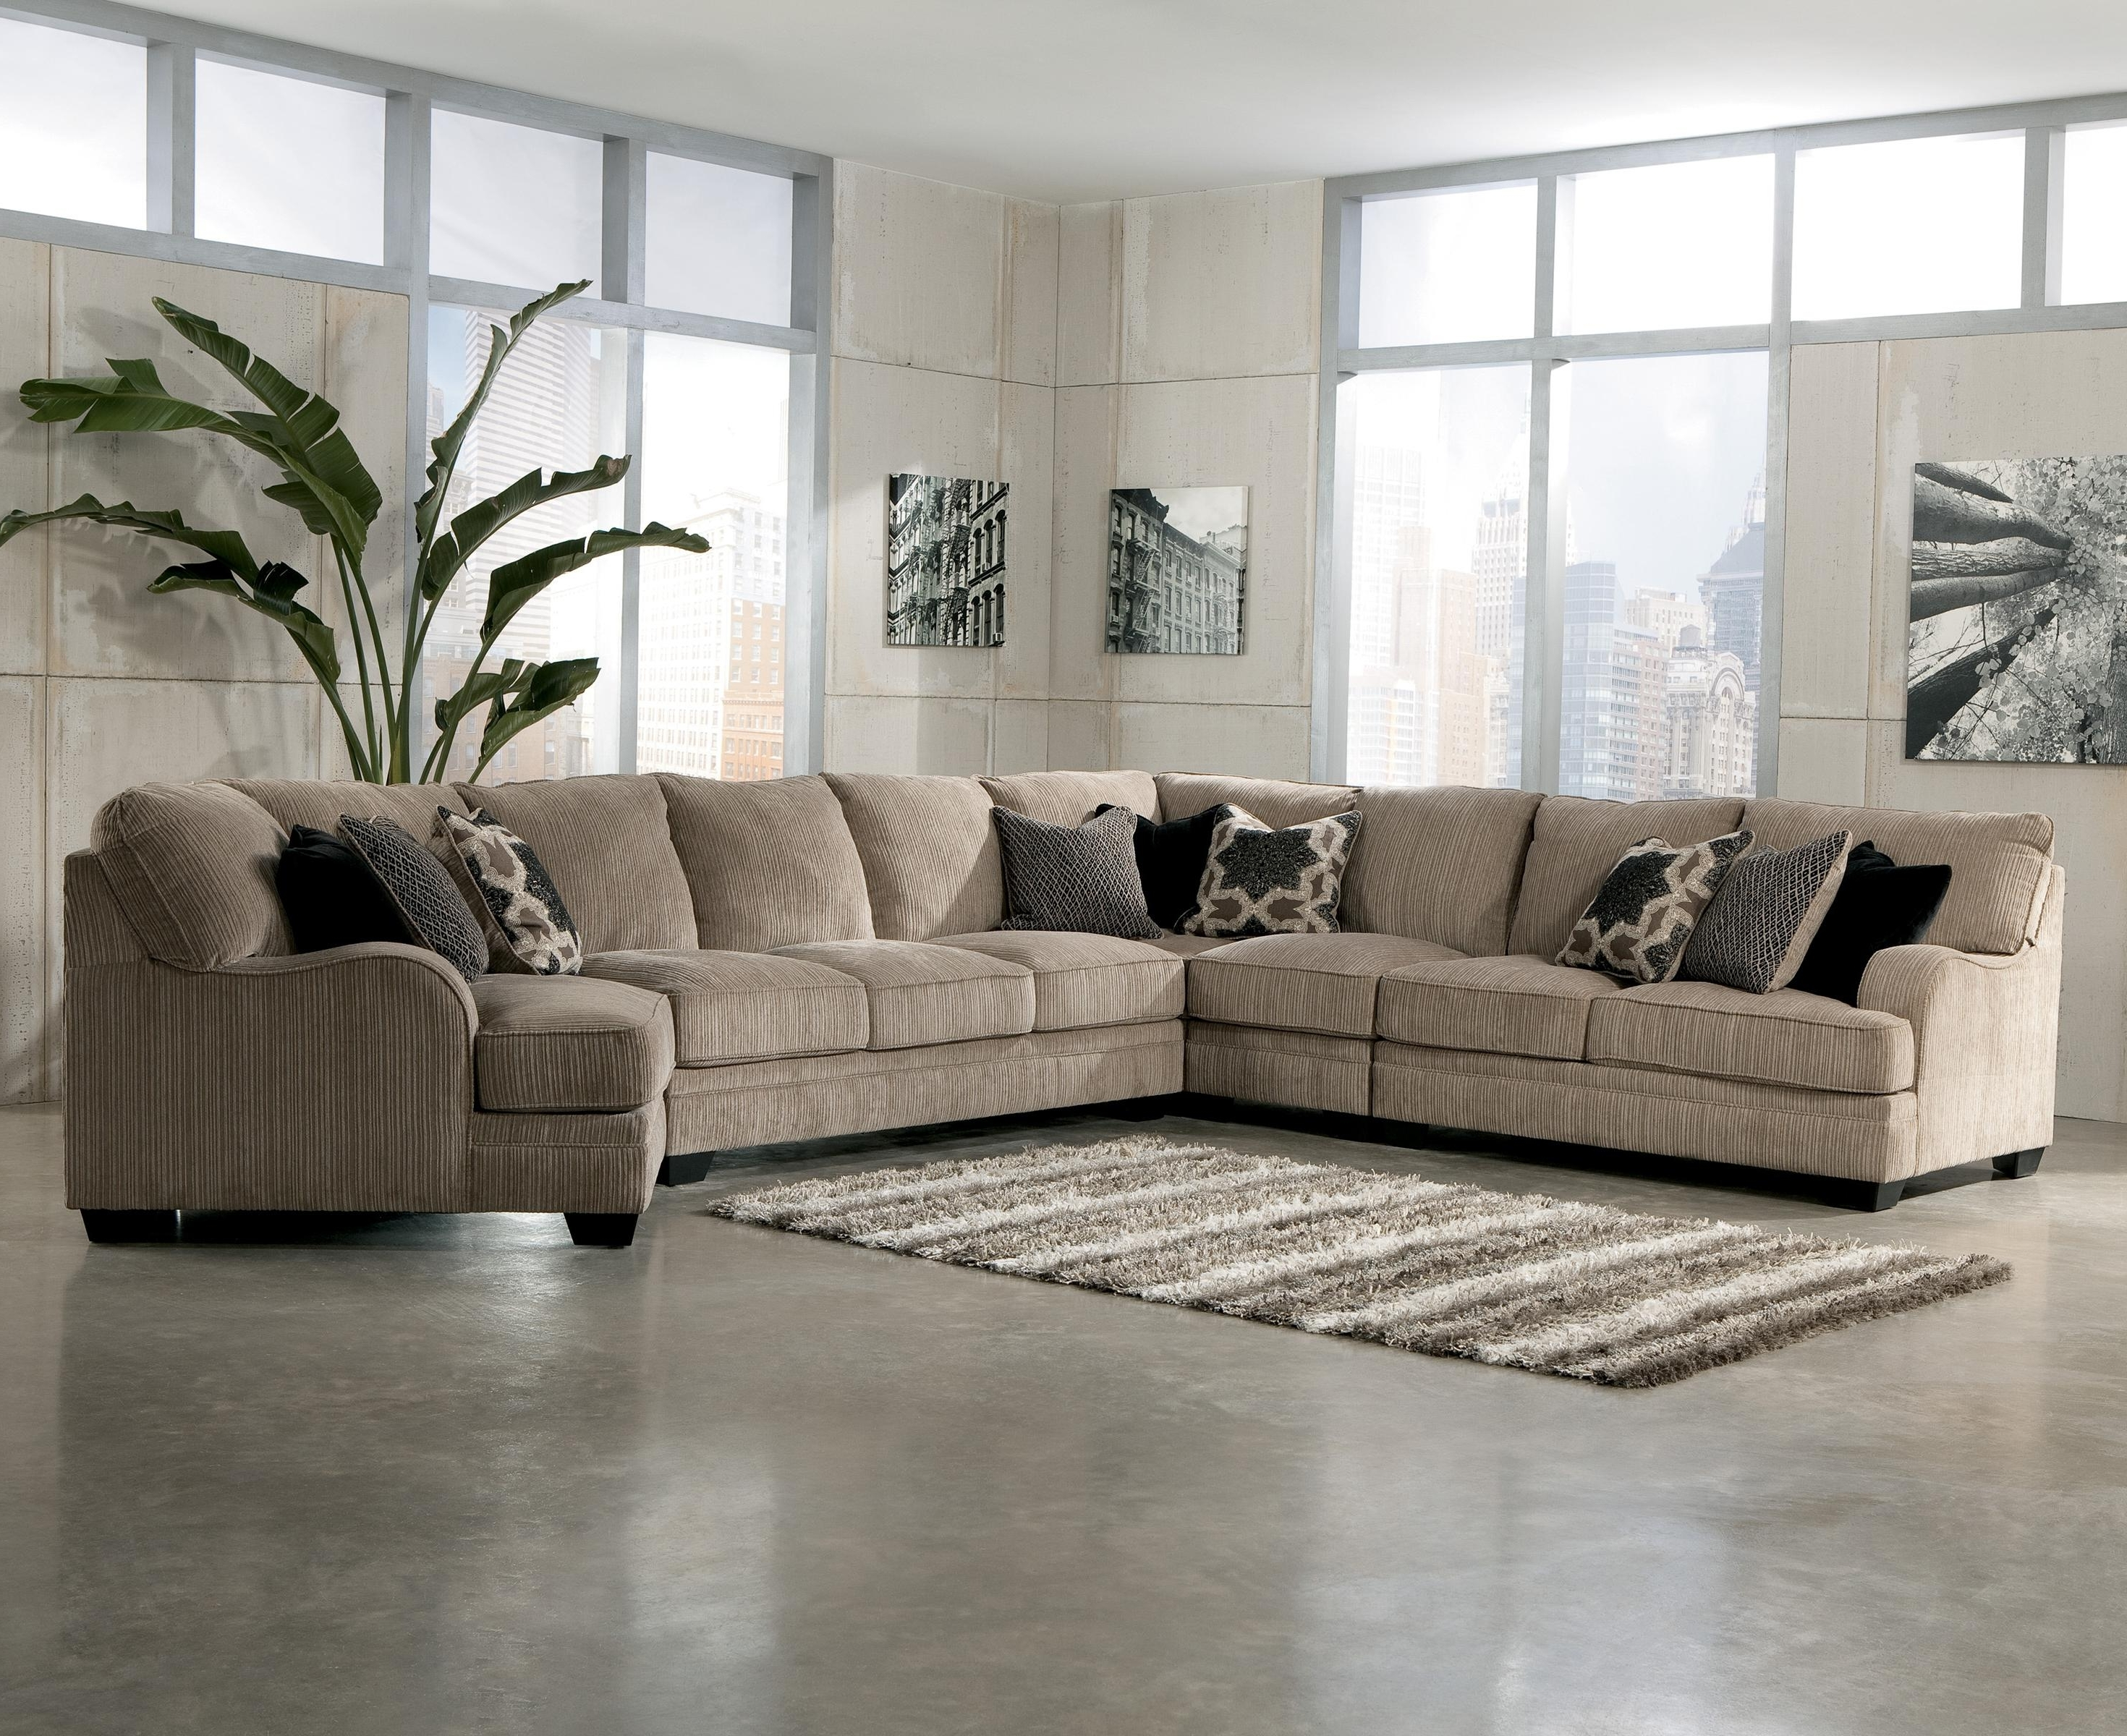 Green Bay Wi Sectional Sofas For Newest Signature Designashley Katisha – Platinum 5 Piece Sectional (Gallery 13 of 20)